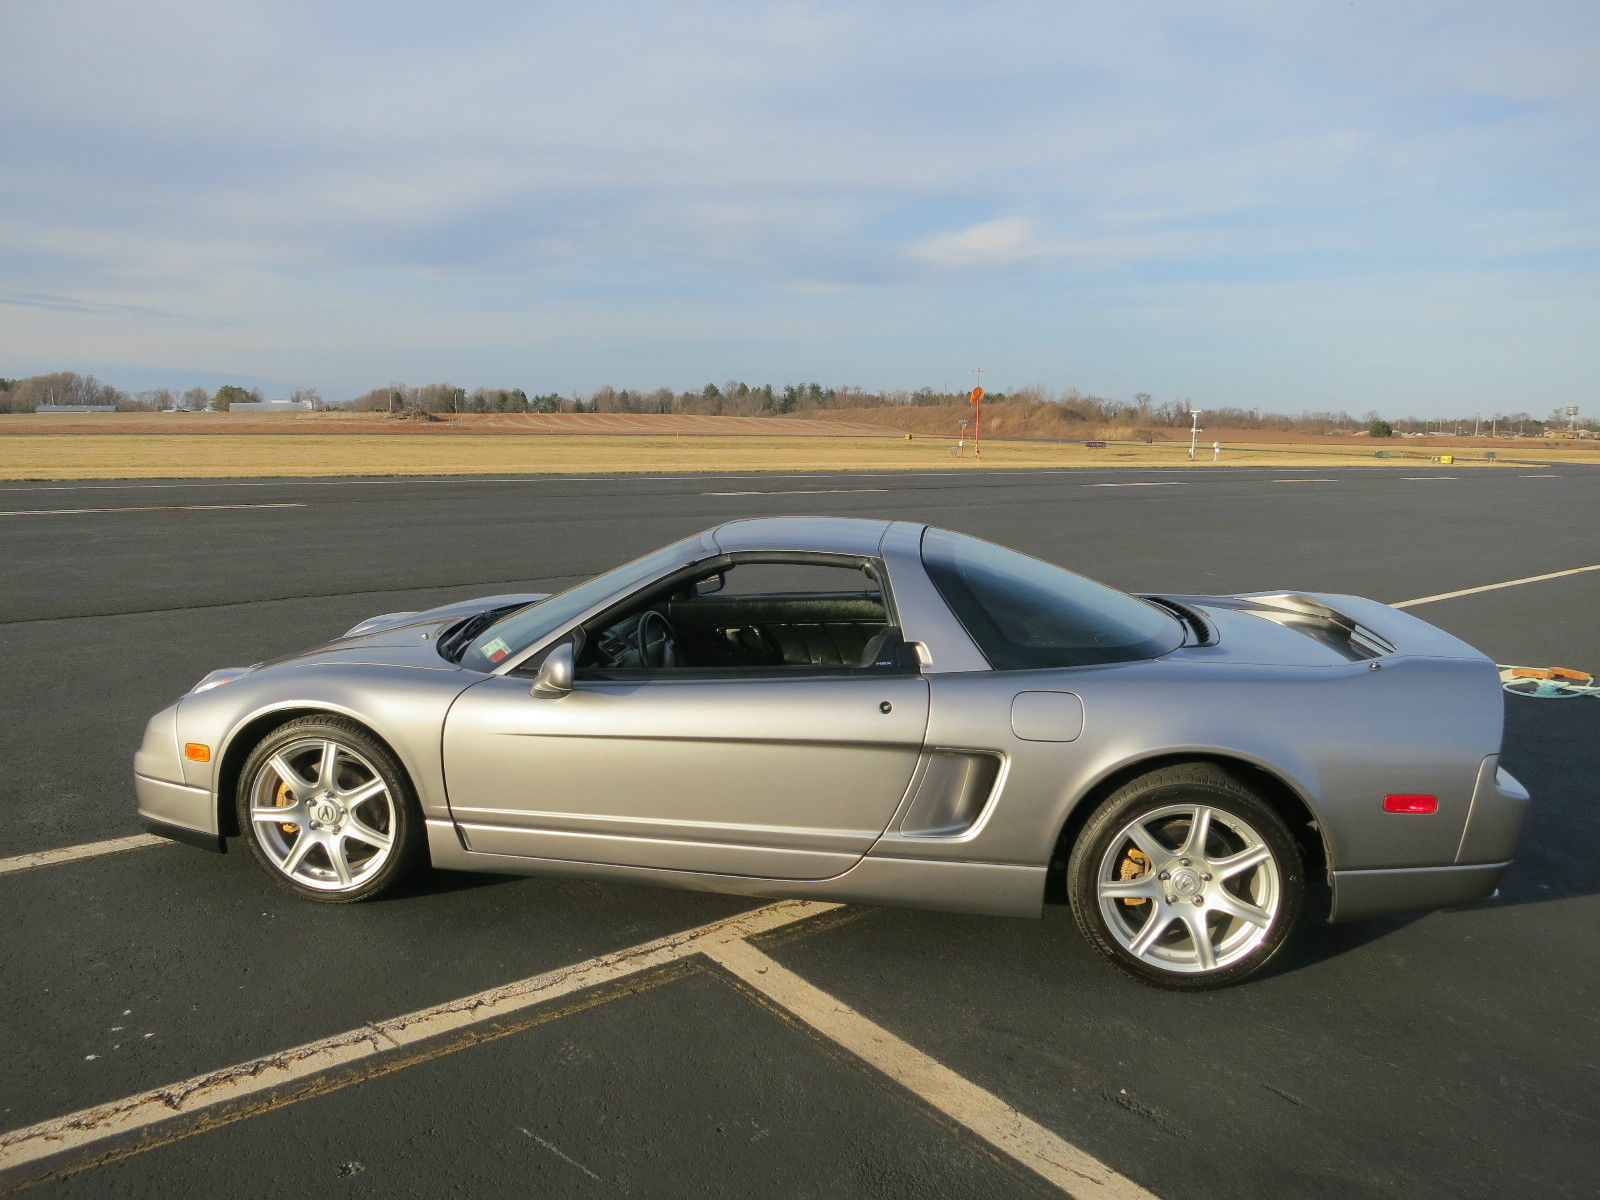 transmission nsx sale for on black acura manual honda speed miles watch